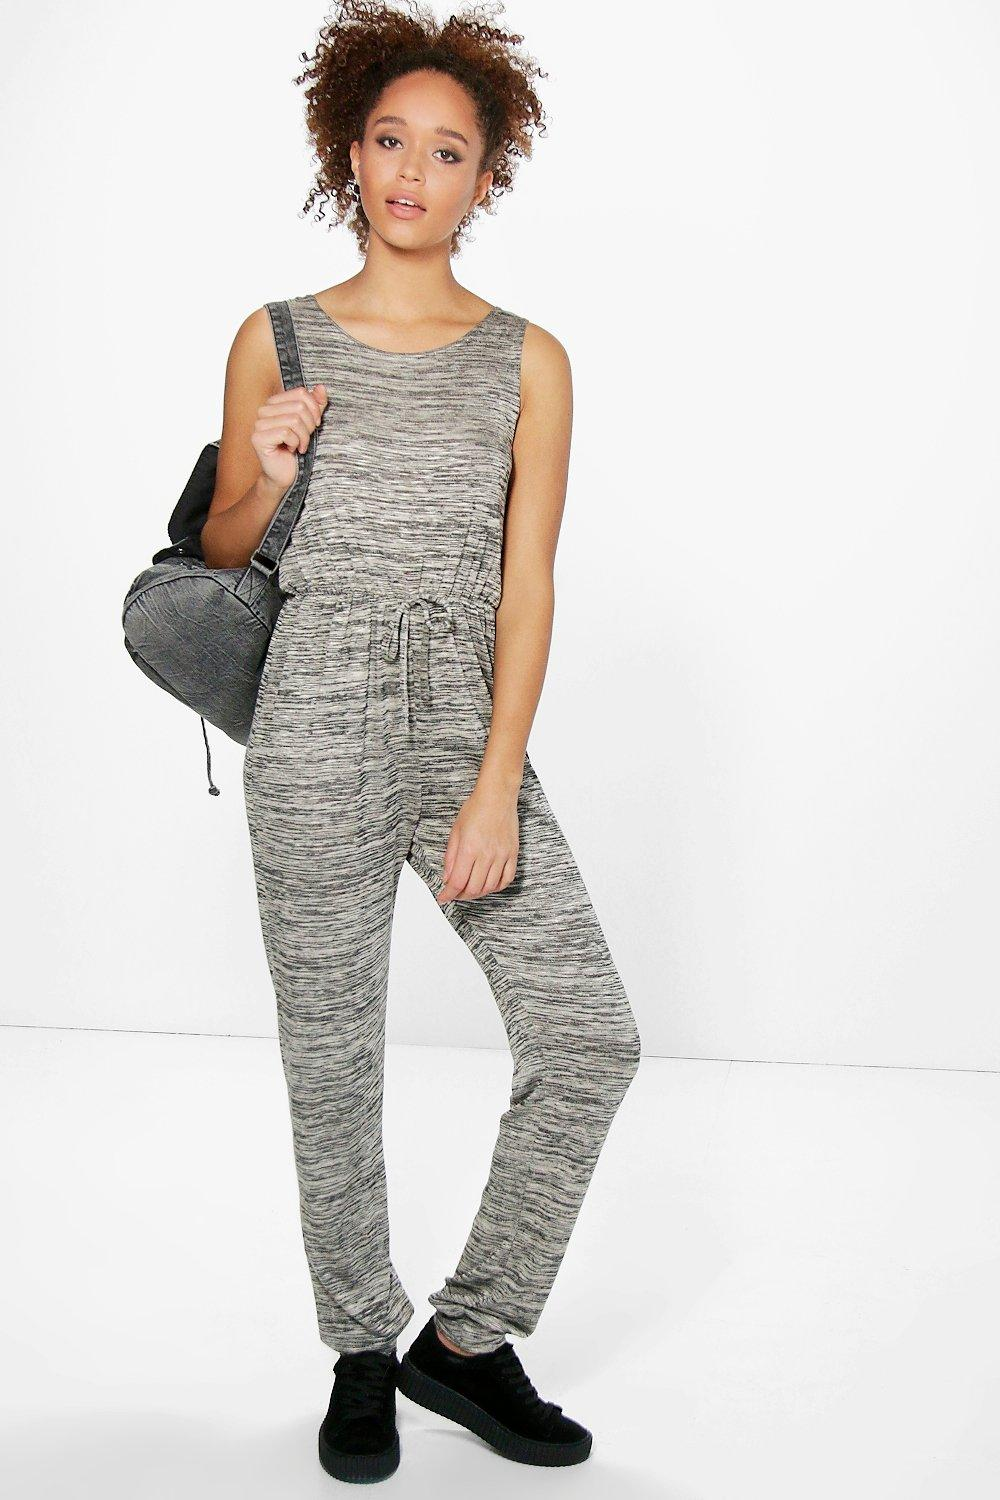 Crochet Jumpsuit : Rose Sleeveless Knitted Jumpsuit at boohoo.com